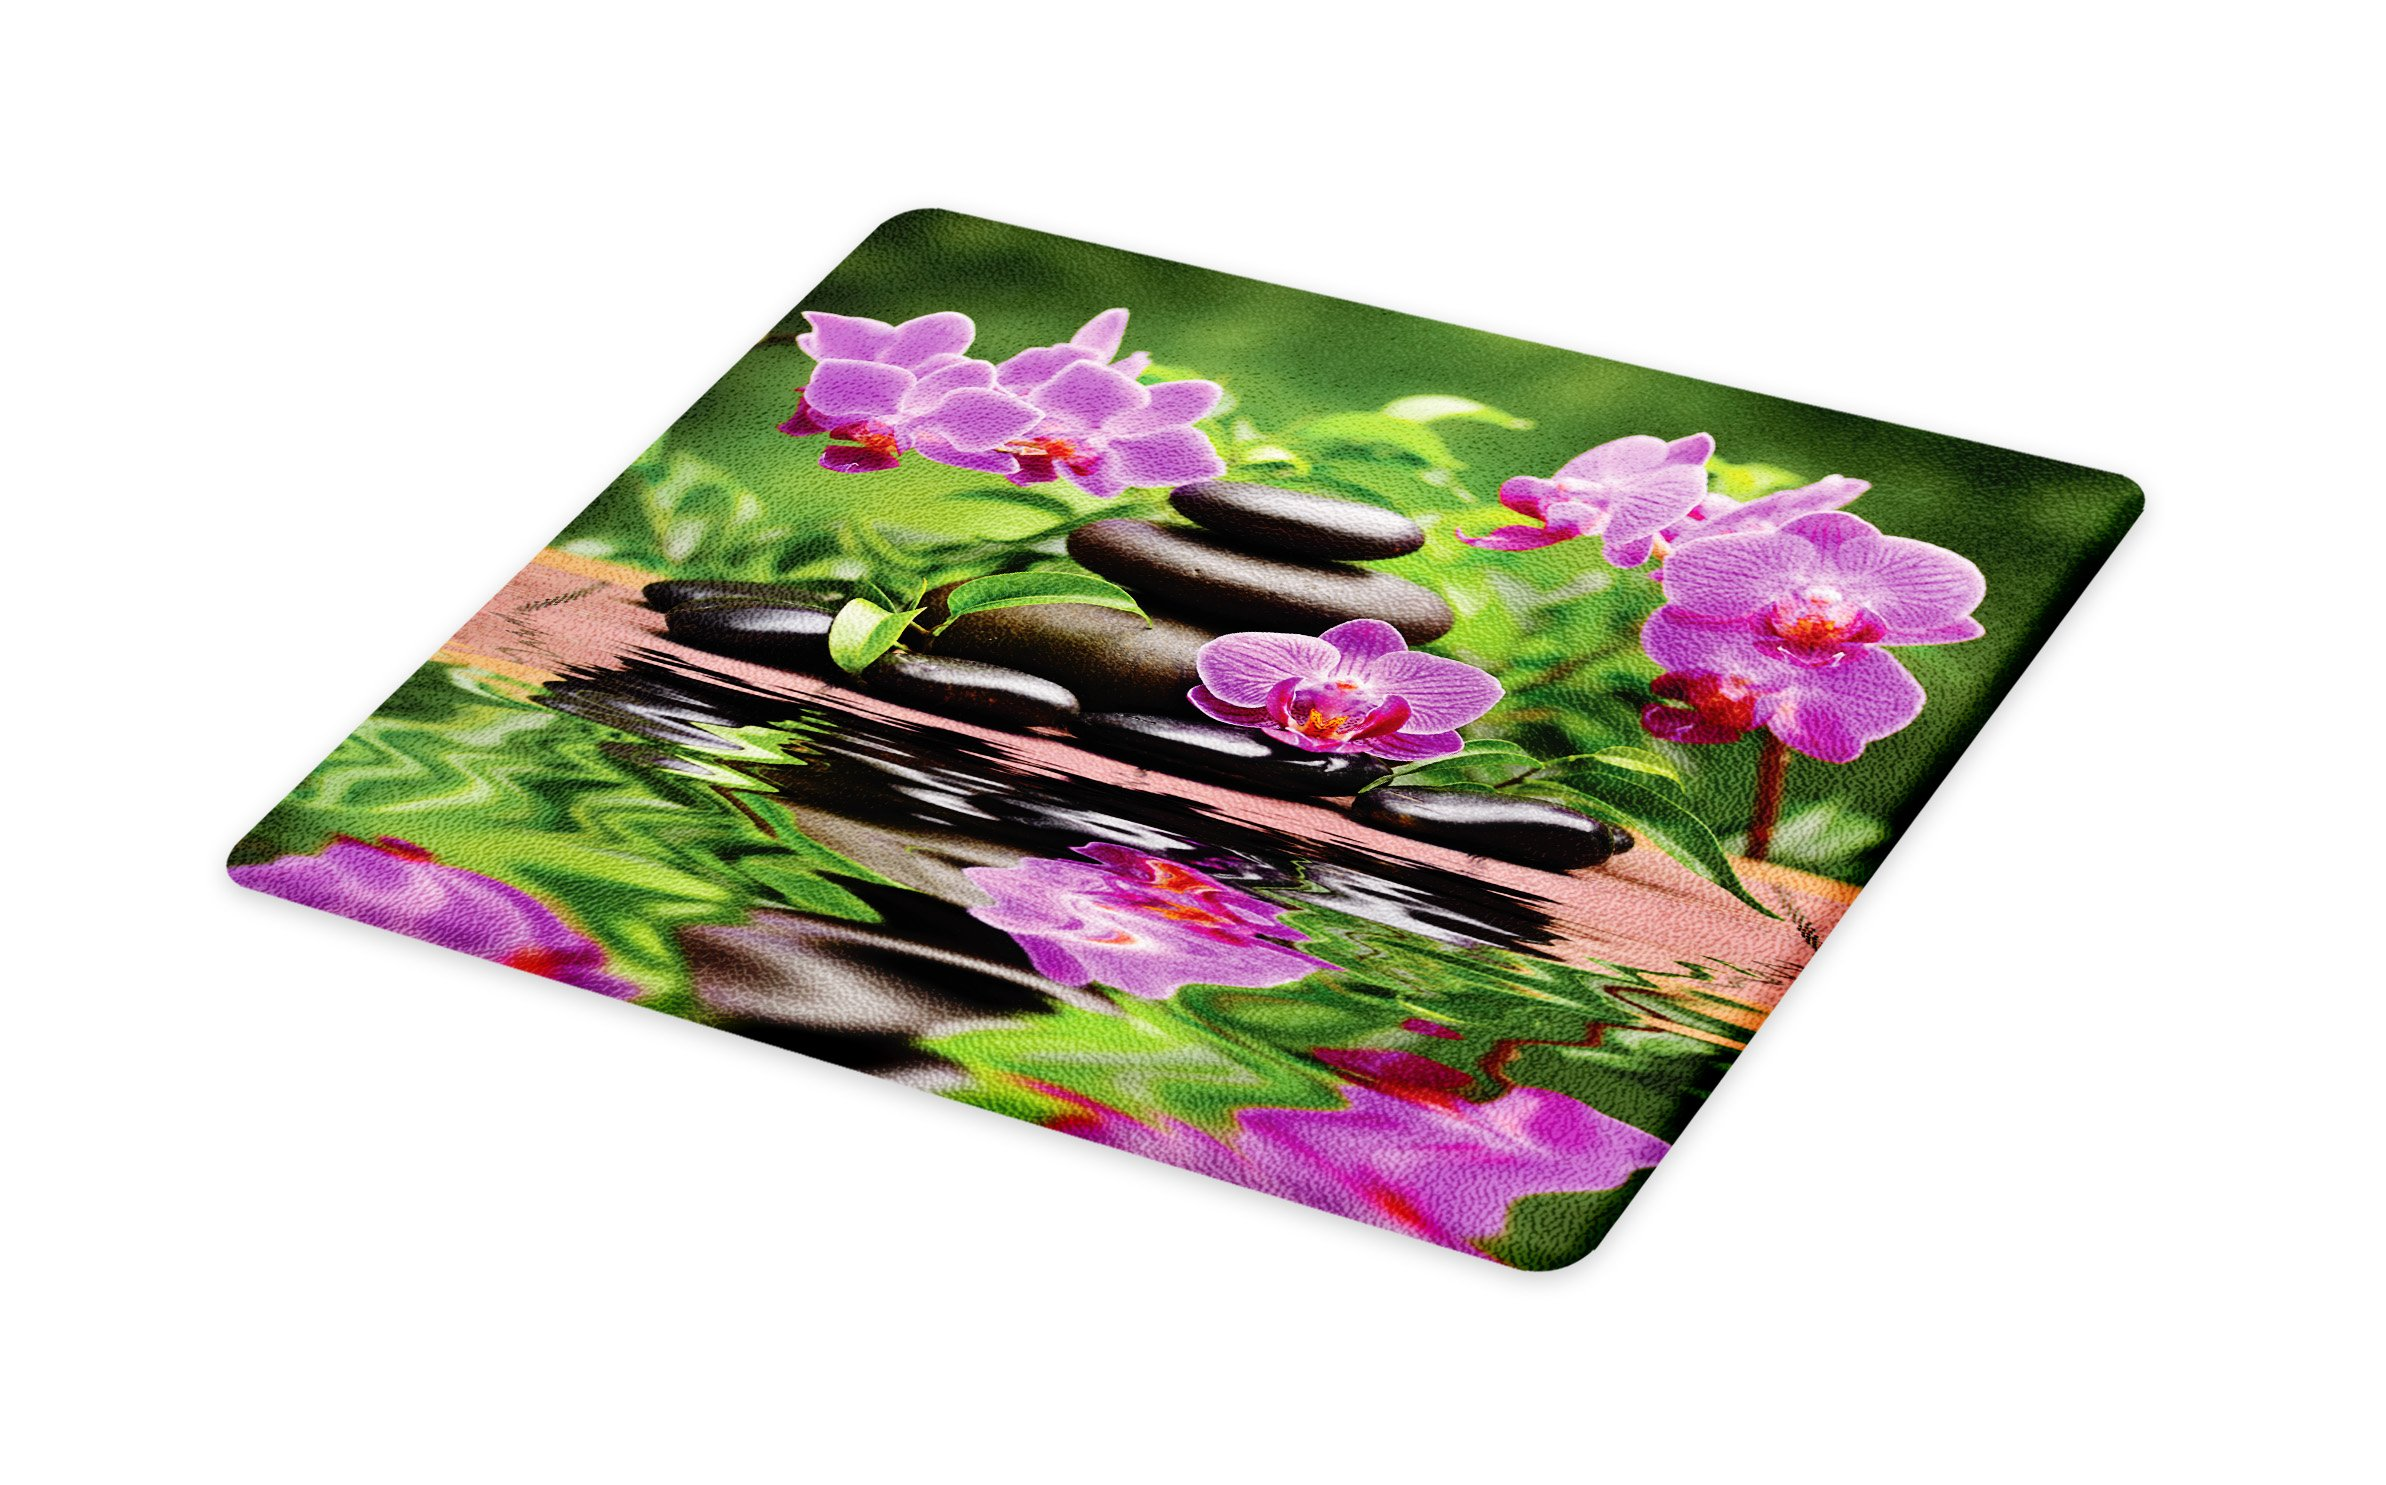 Lunarable Spa Cutting Board, Zen Basalt Stones and Orchid Reflecting on Water Greenery Wellbeing Tropical, Decorative Tempered Glass Cutting and Serving Board, Small Size, Fren Green Lavander